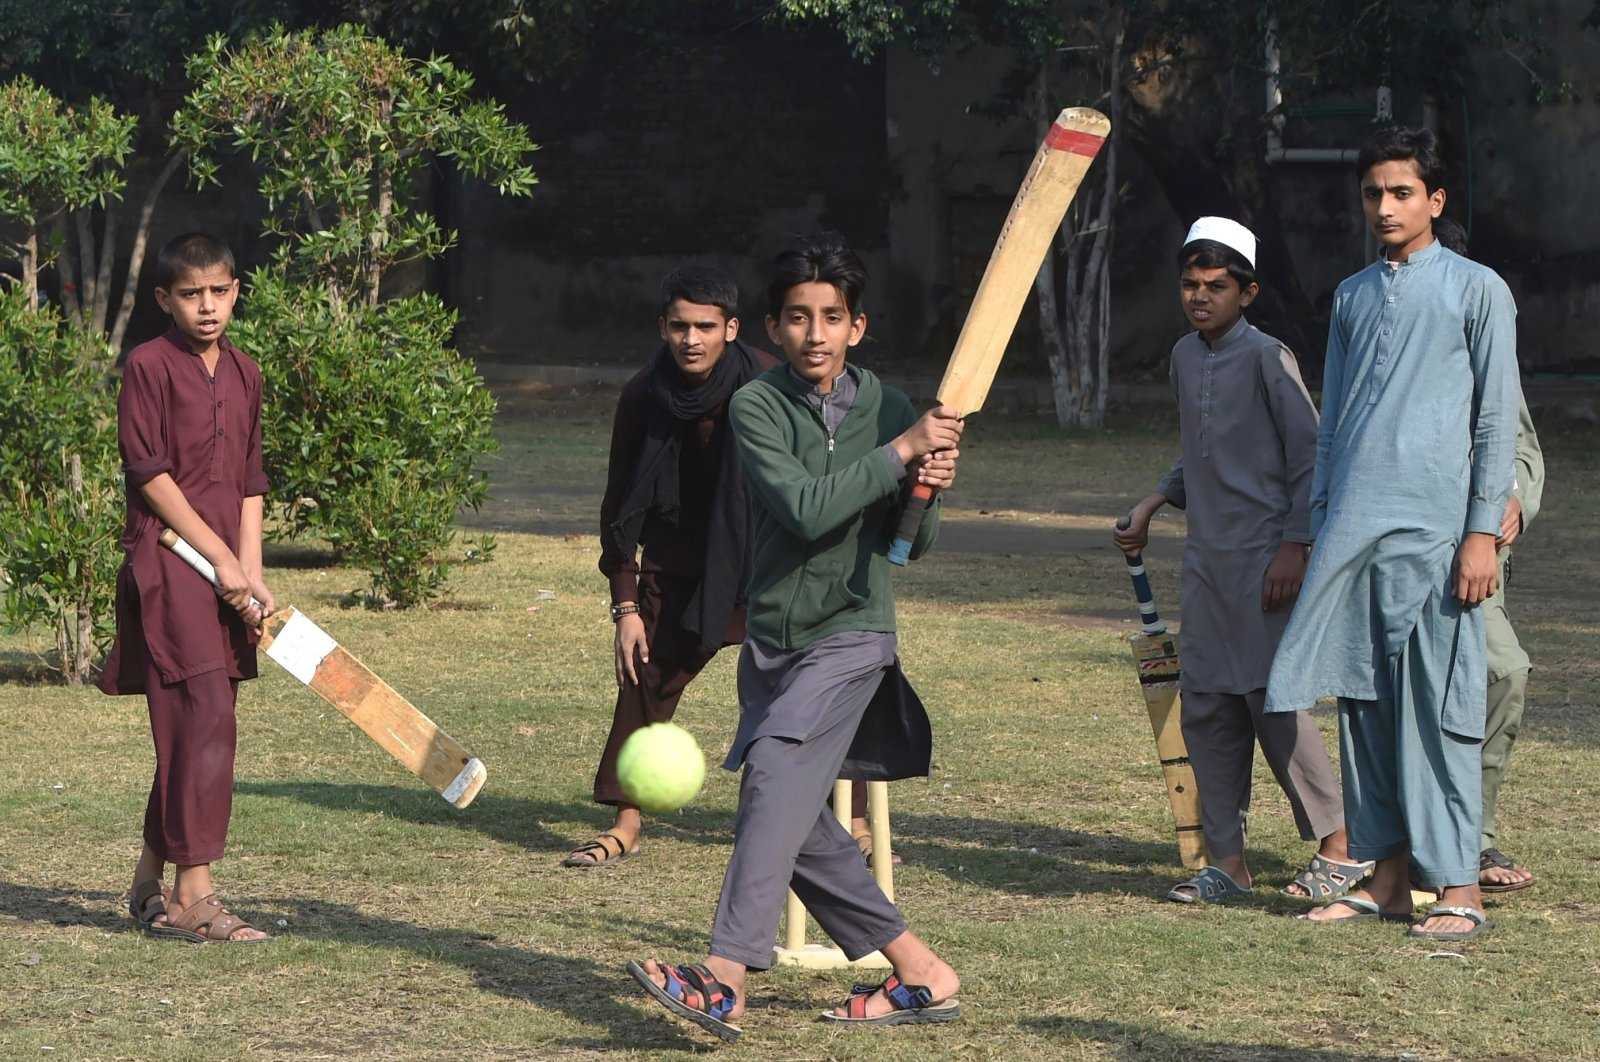 Pakistani youth play cricket at a playground in Lahore, Pakistan, Nov. 19, 2020. (AFP Photo)